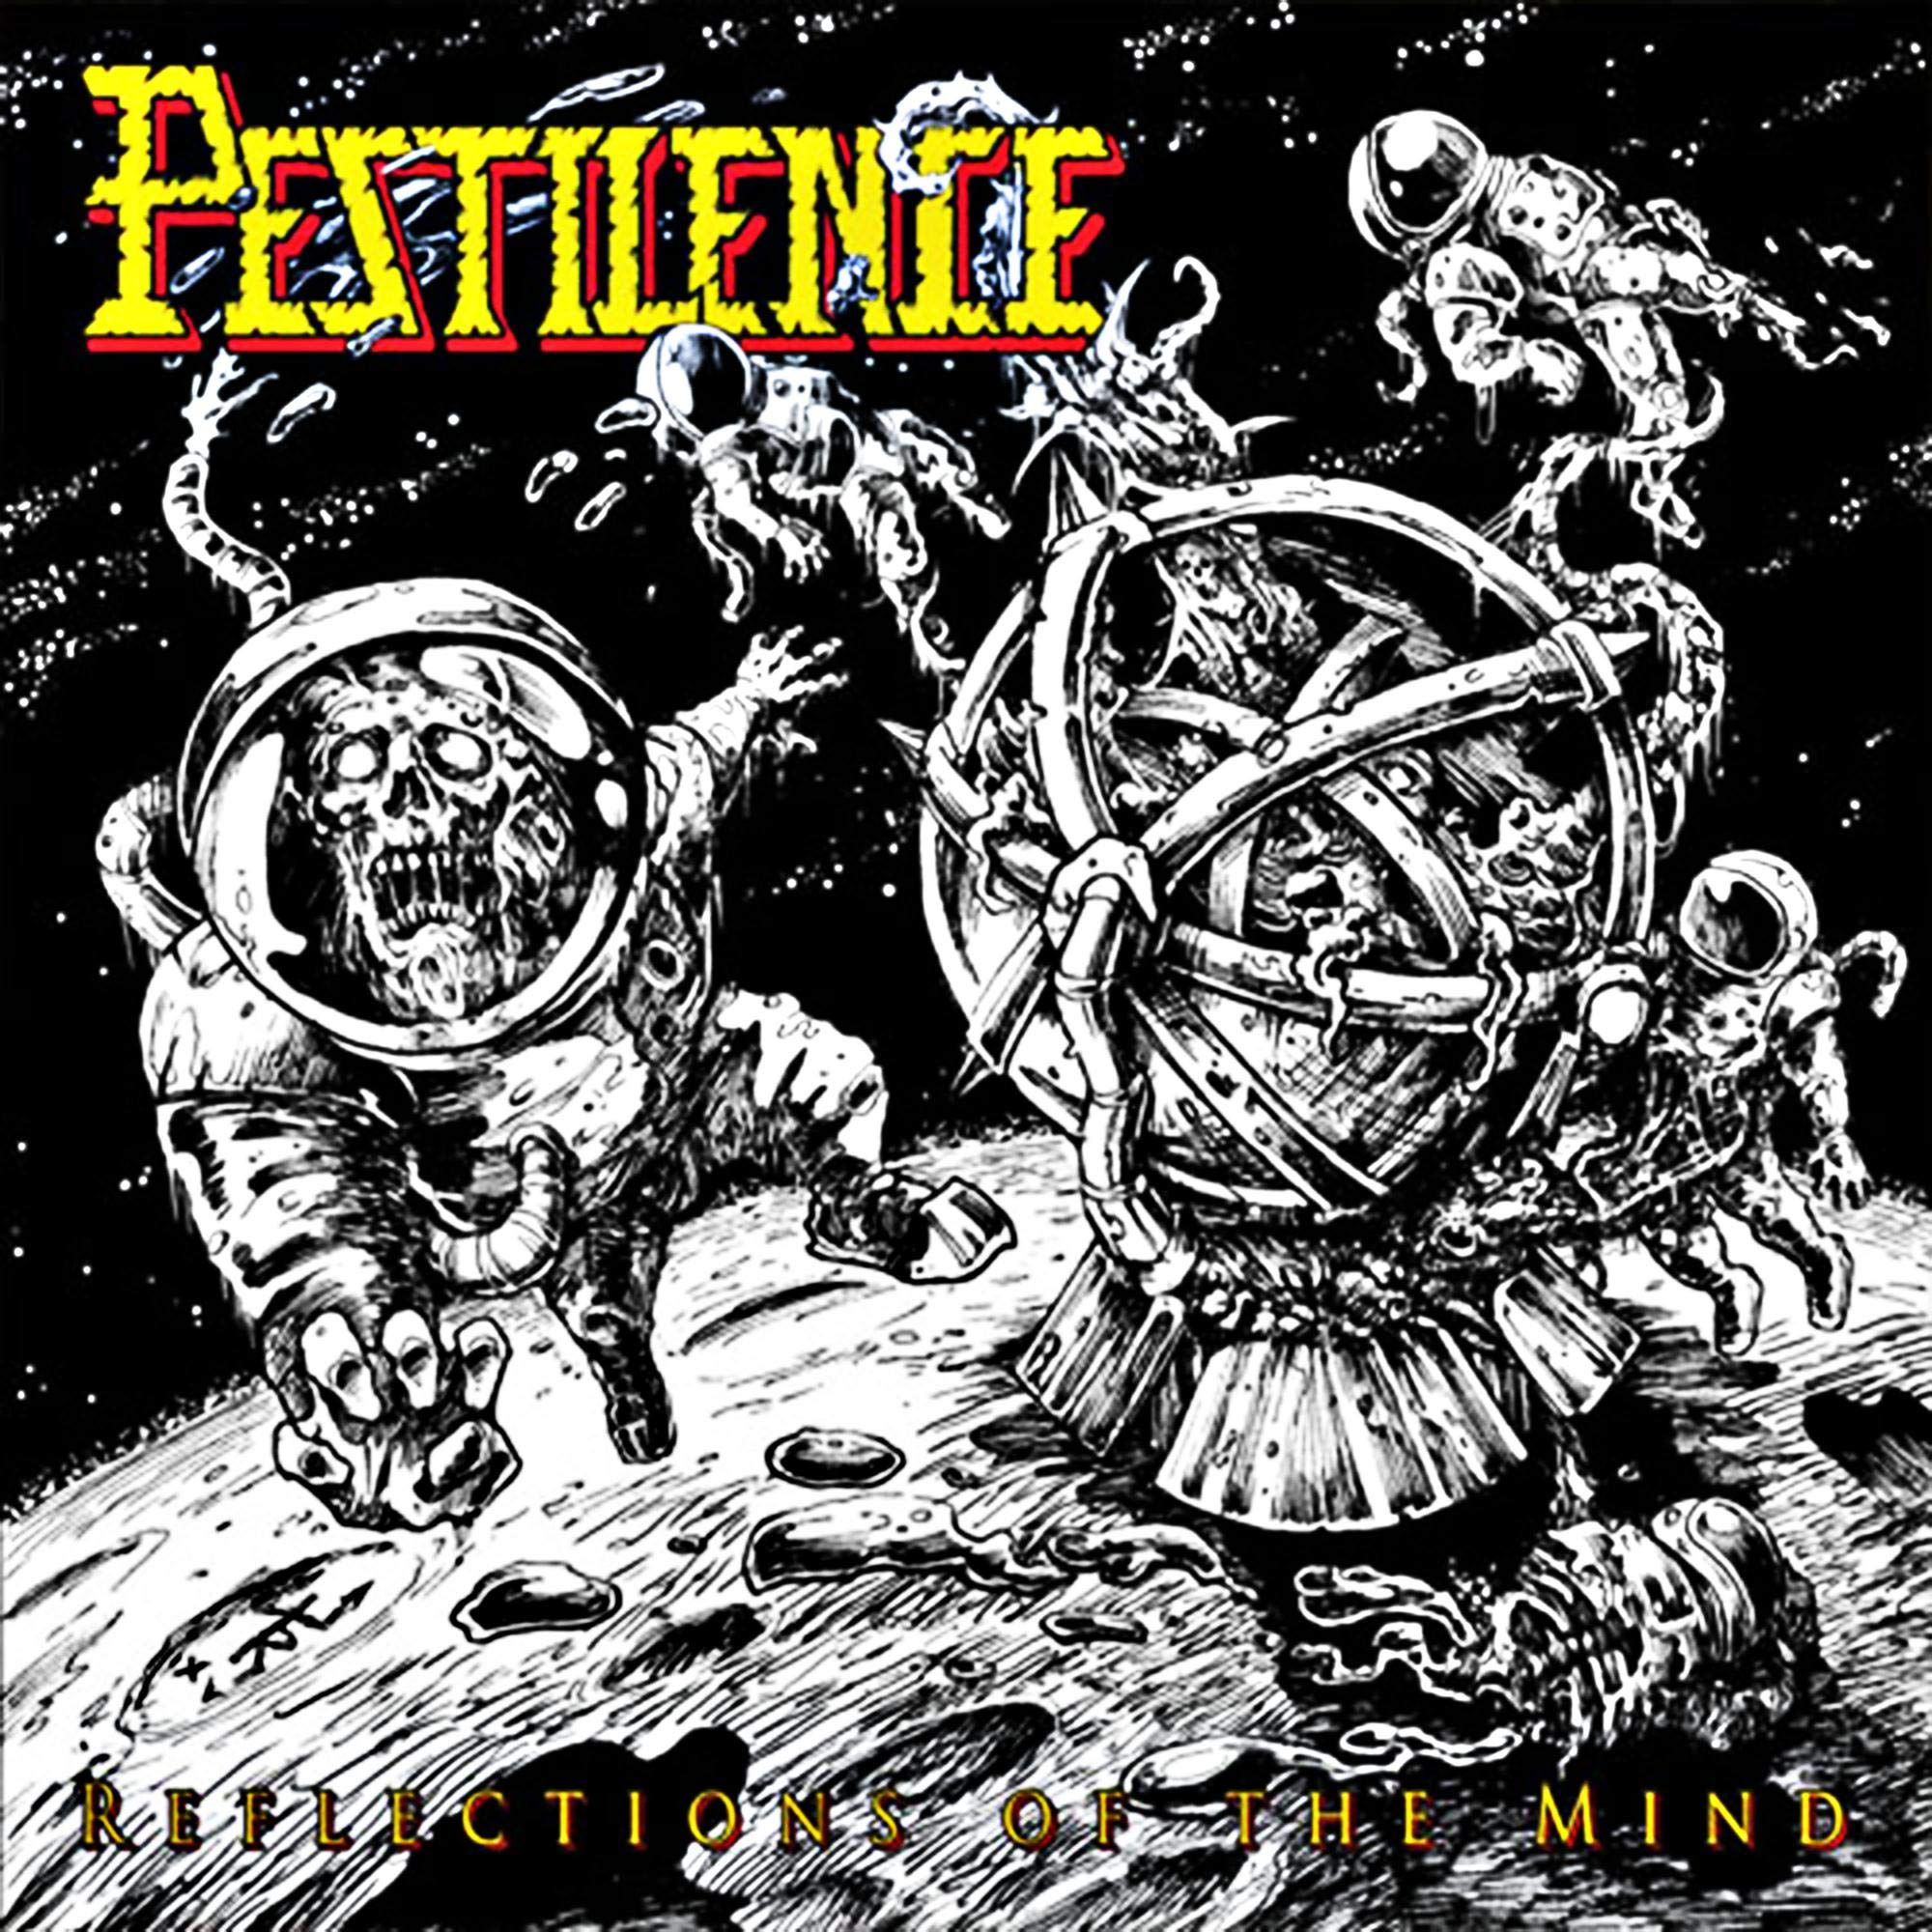 Pestilence - Reflections of the Mind (2016) [FLAC] Download